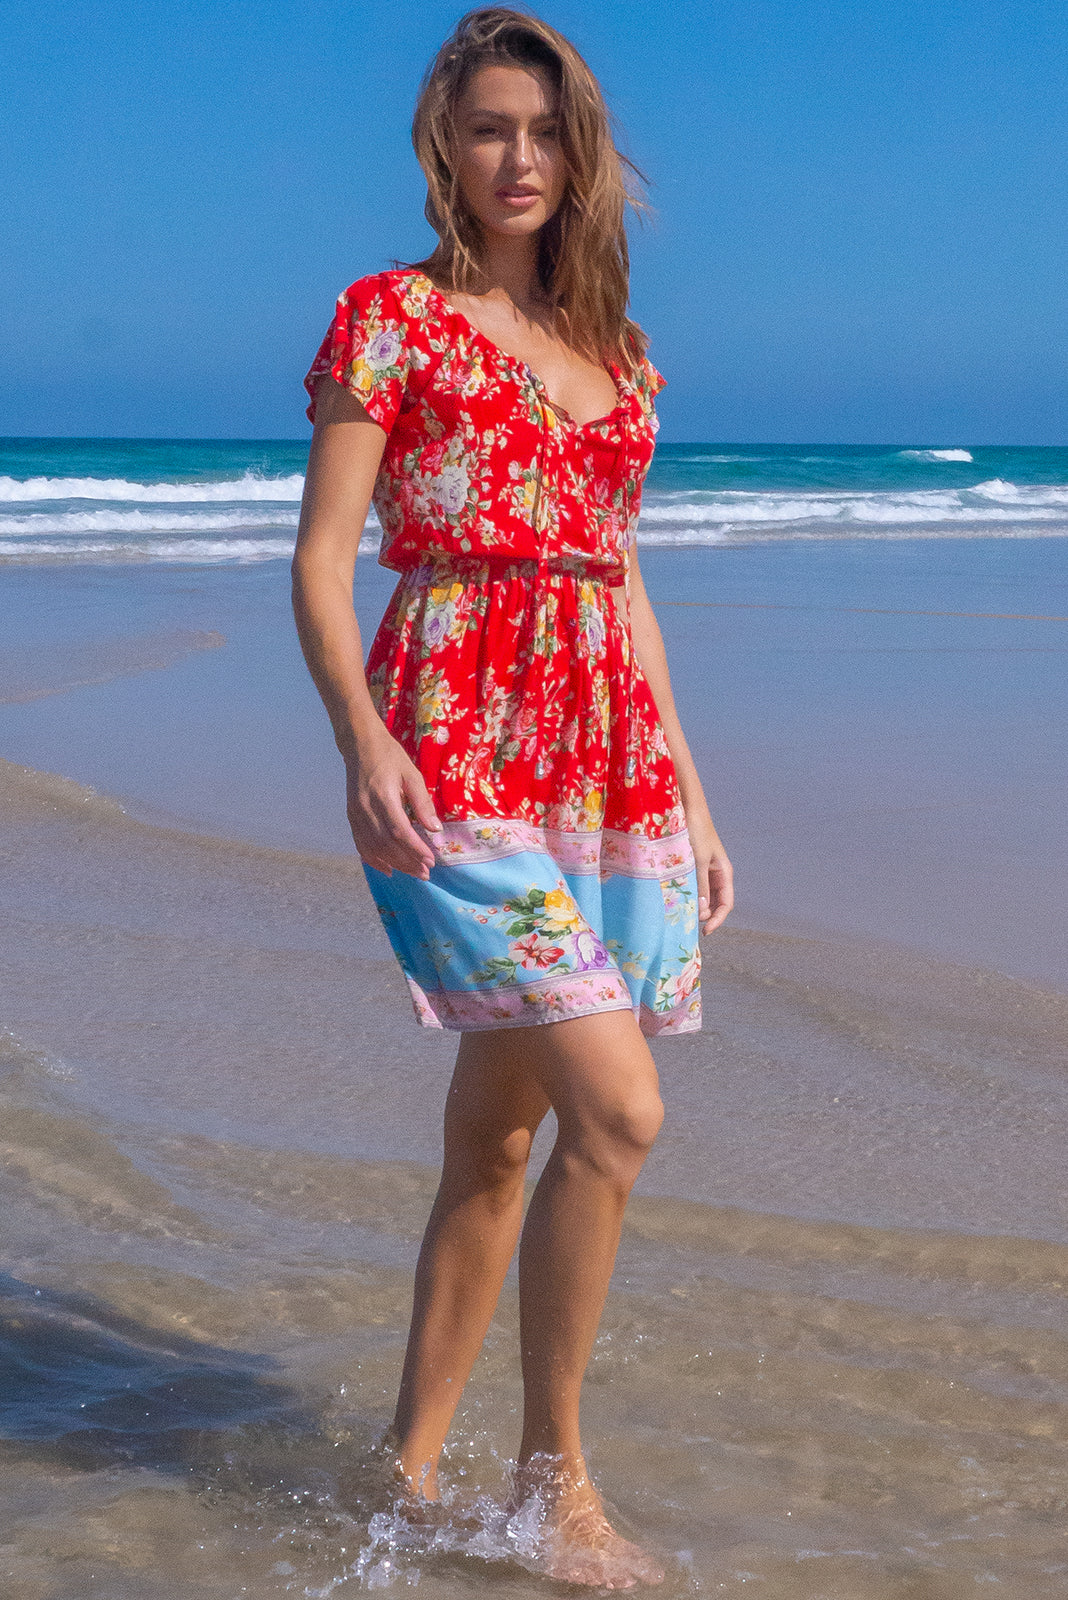 The Ace Red Roses Dress features adjustable neckline with ties, cap spire sleeves, elasticated waist, side pockets and 100% rayon in red base with vintage ind floral print and border detail.